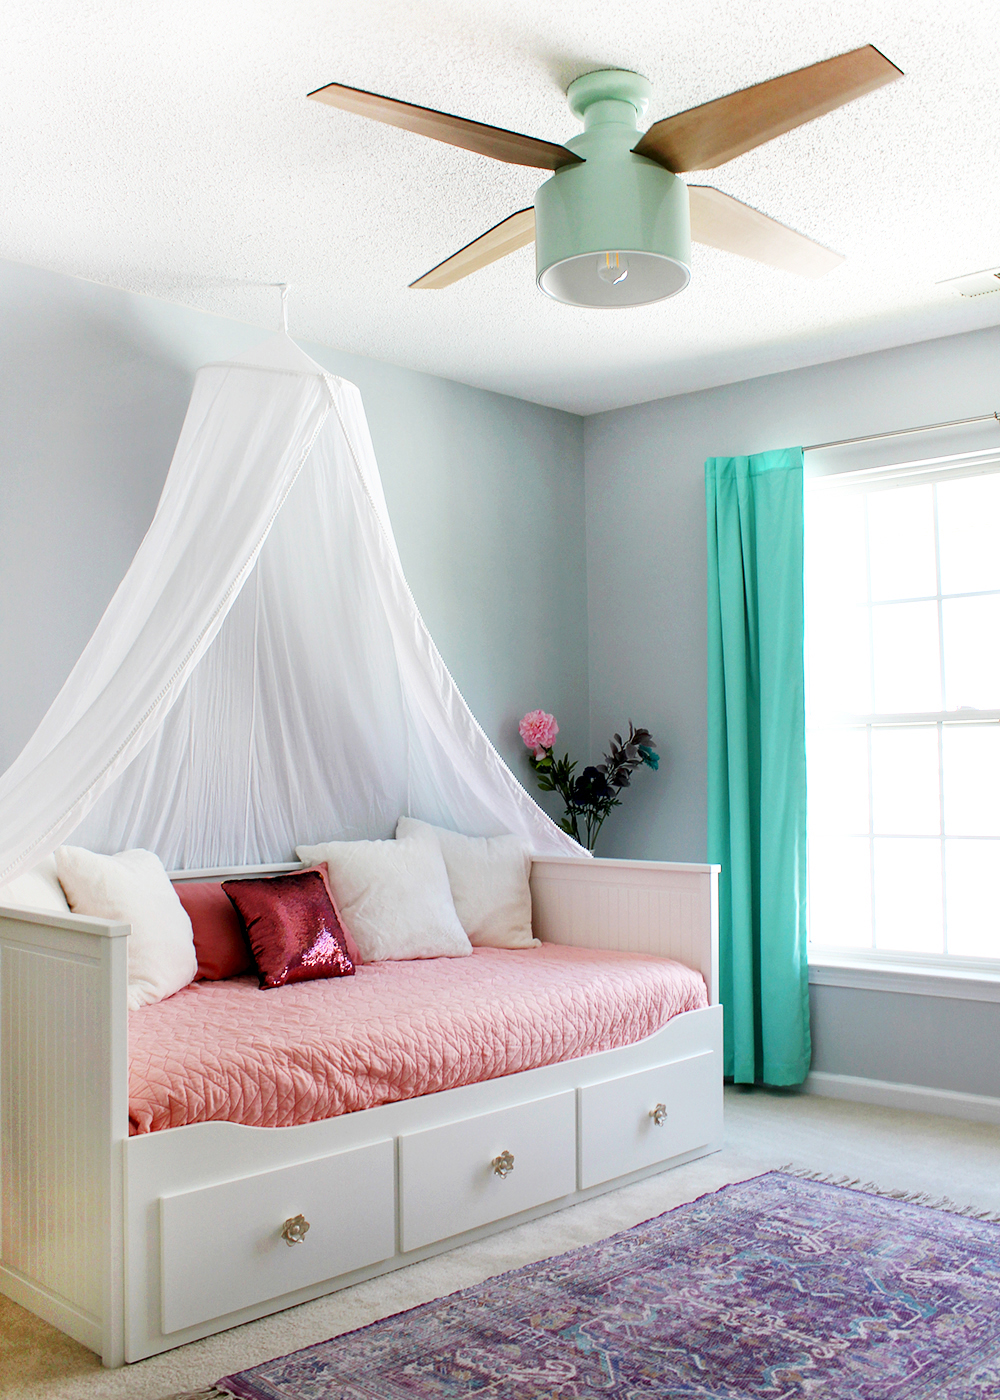 tween girl bedroom with mint ceiling fan and cheerful daybed with canopy